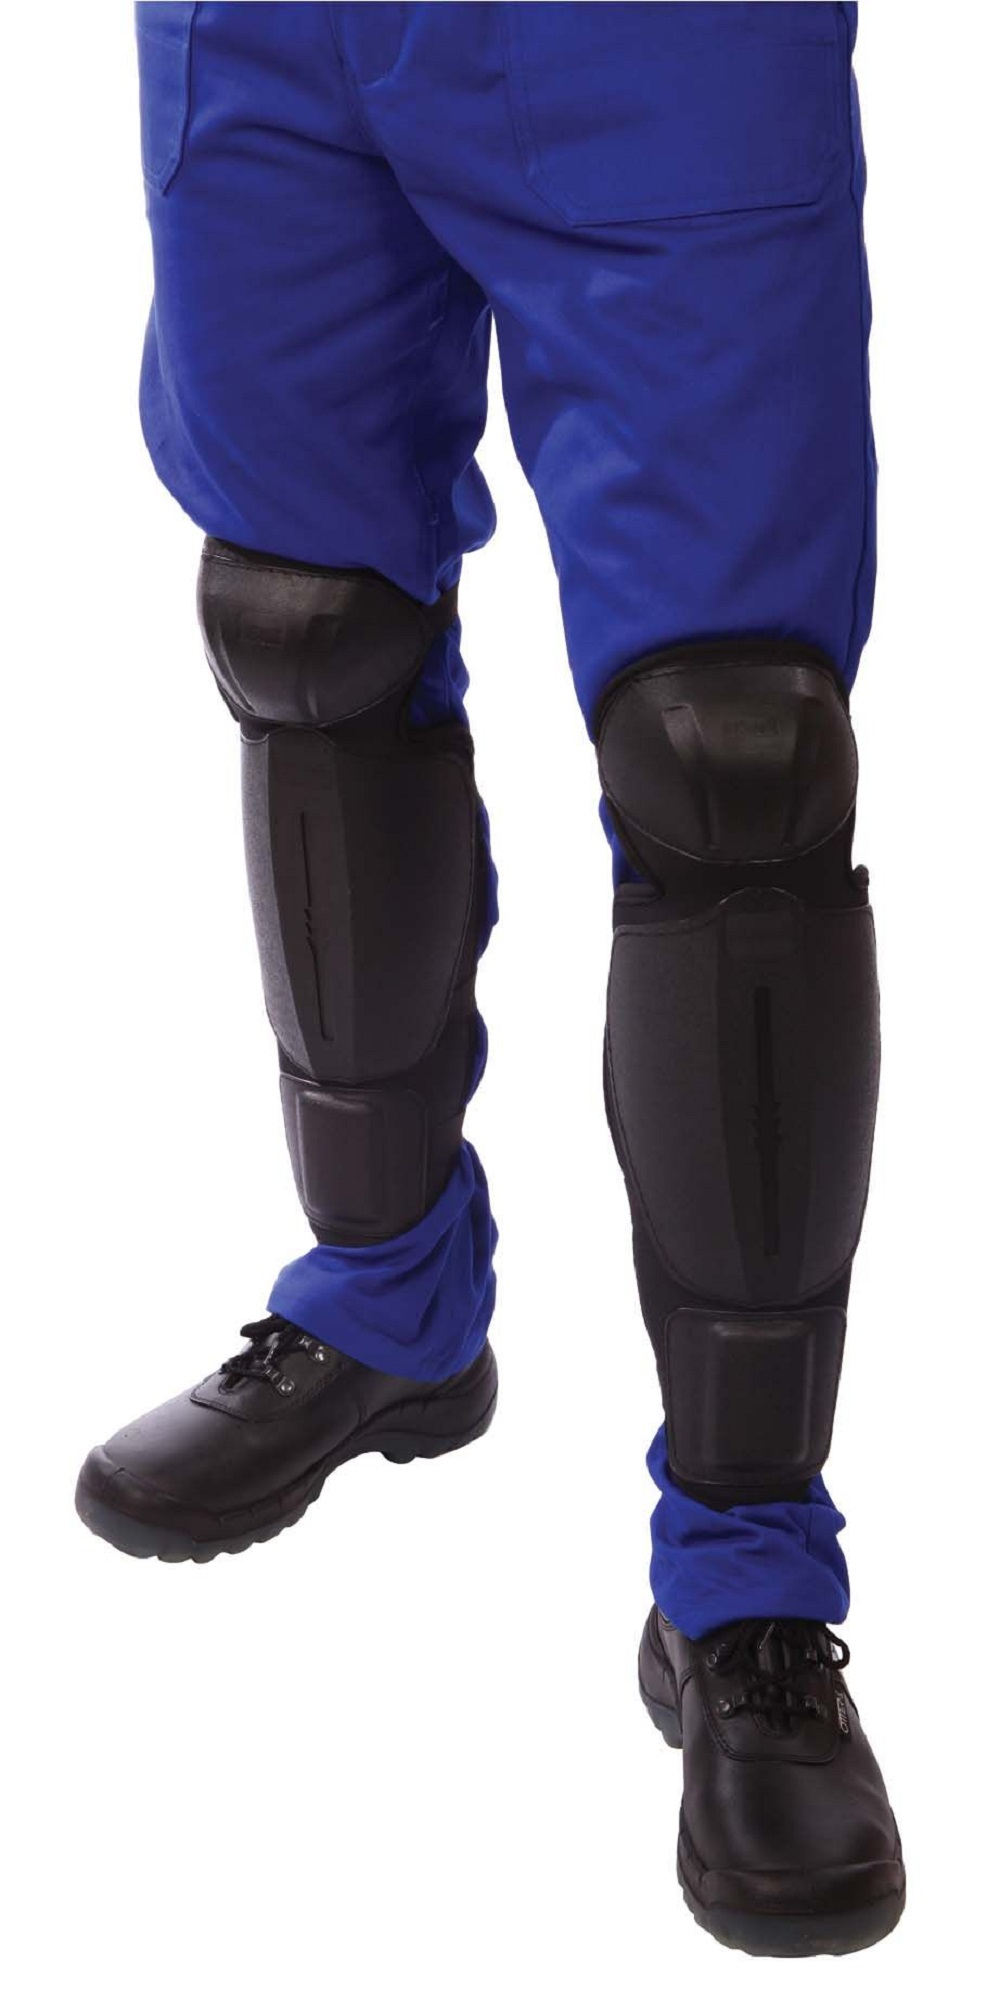 knee-tibial protector